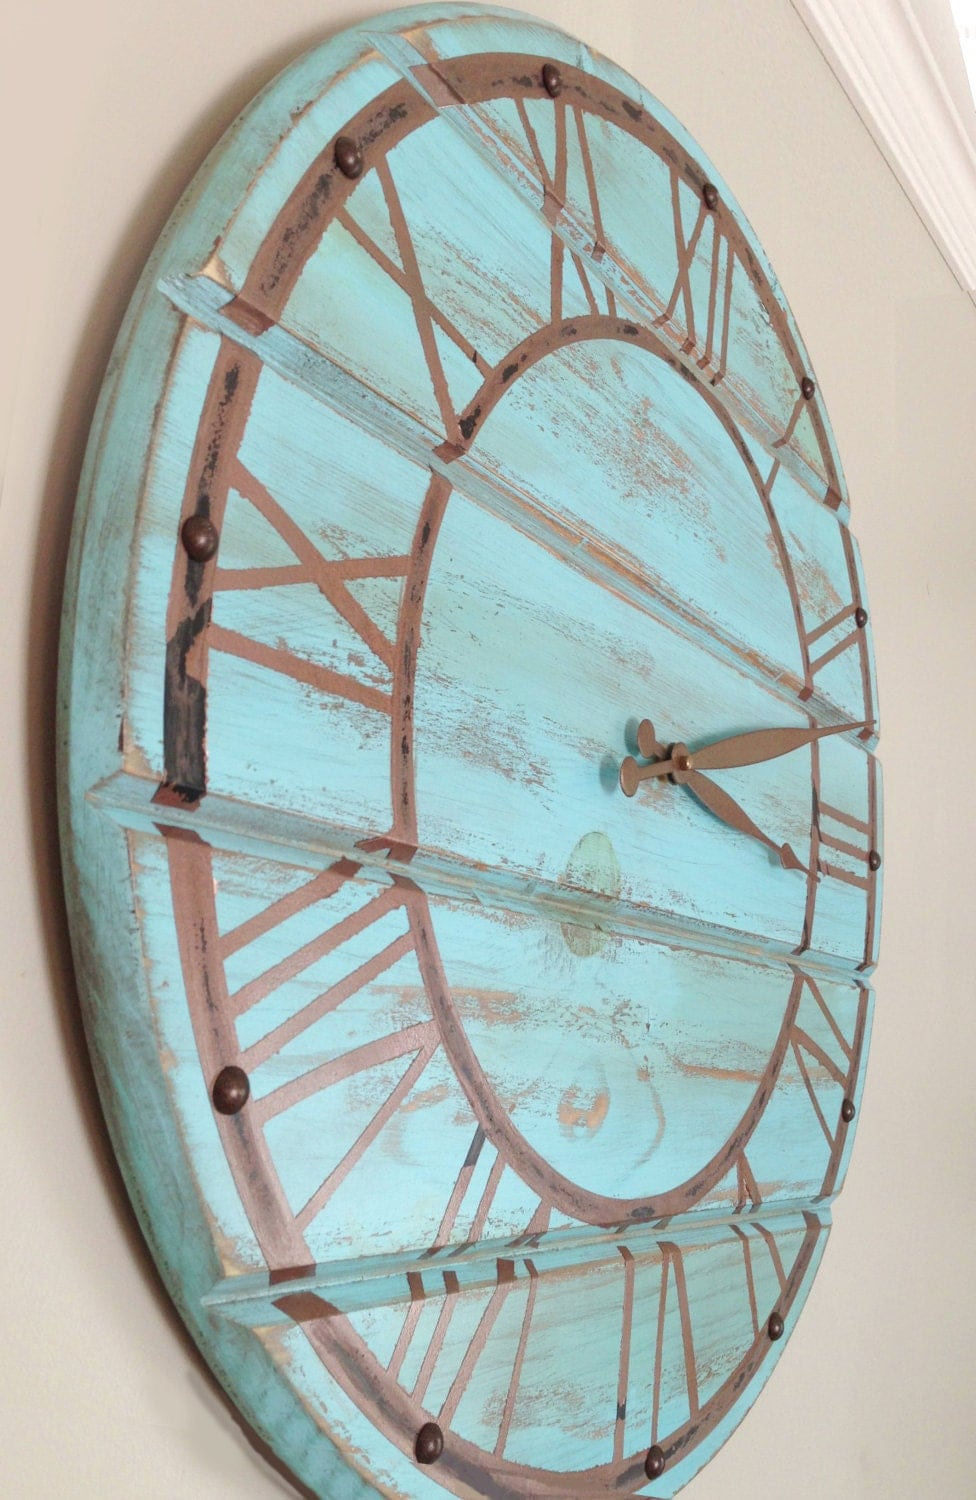 22 Inch Giant Wall Clock Wooden Wall Clock By